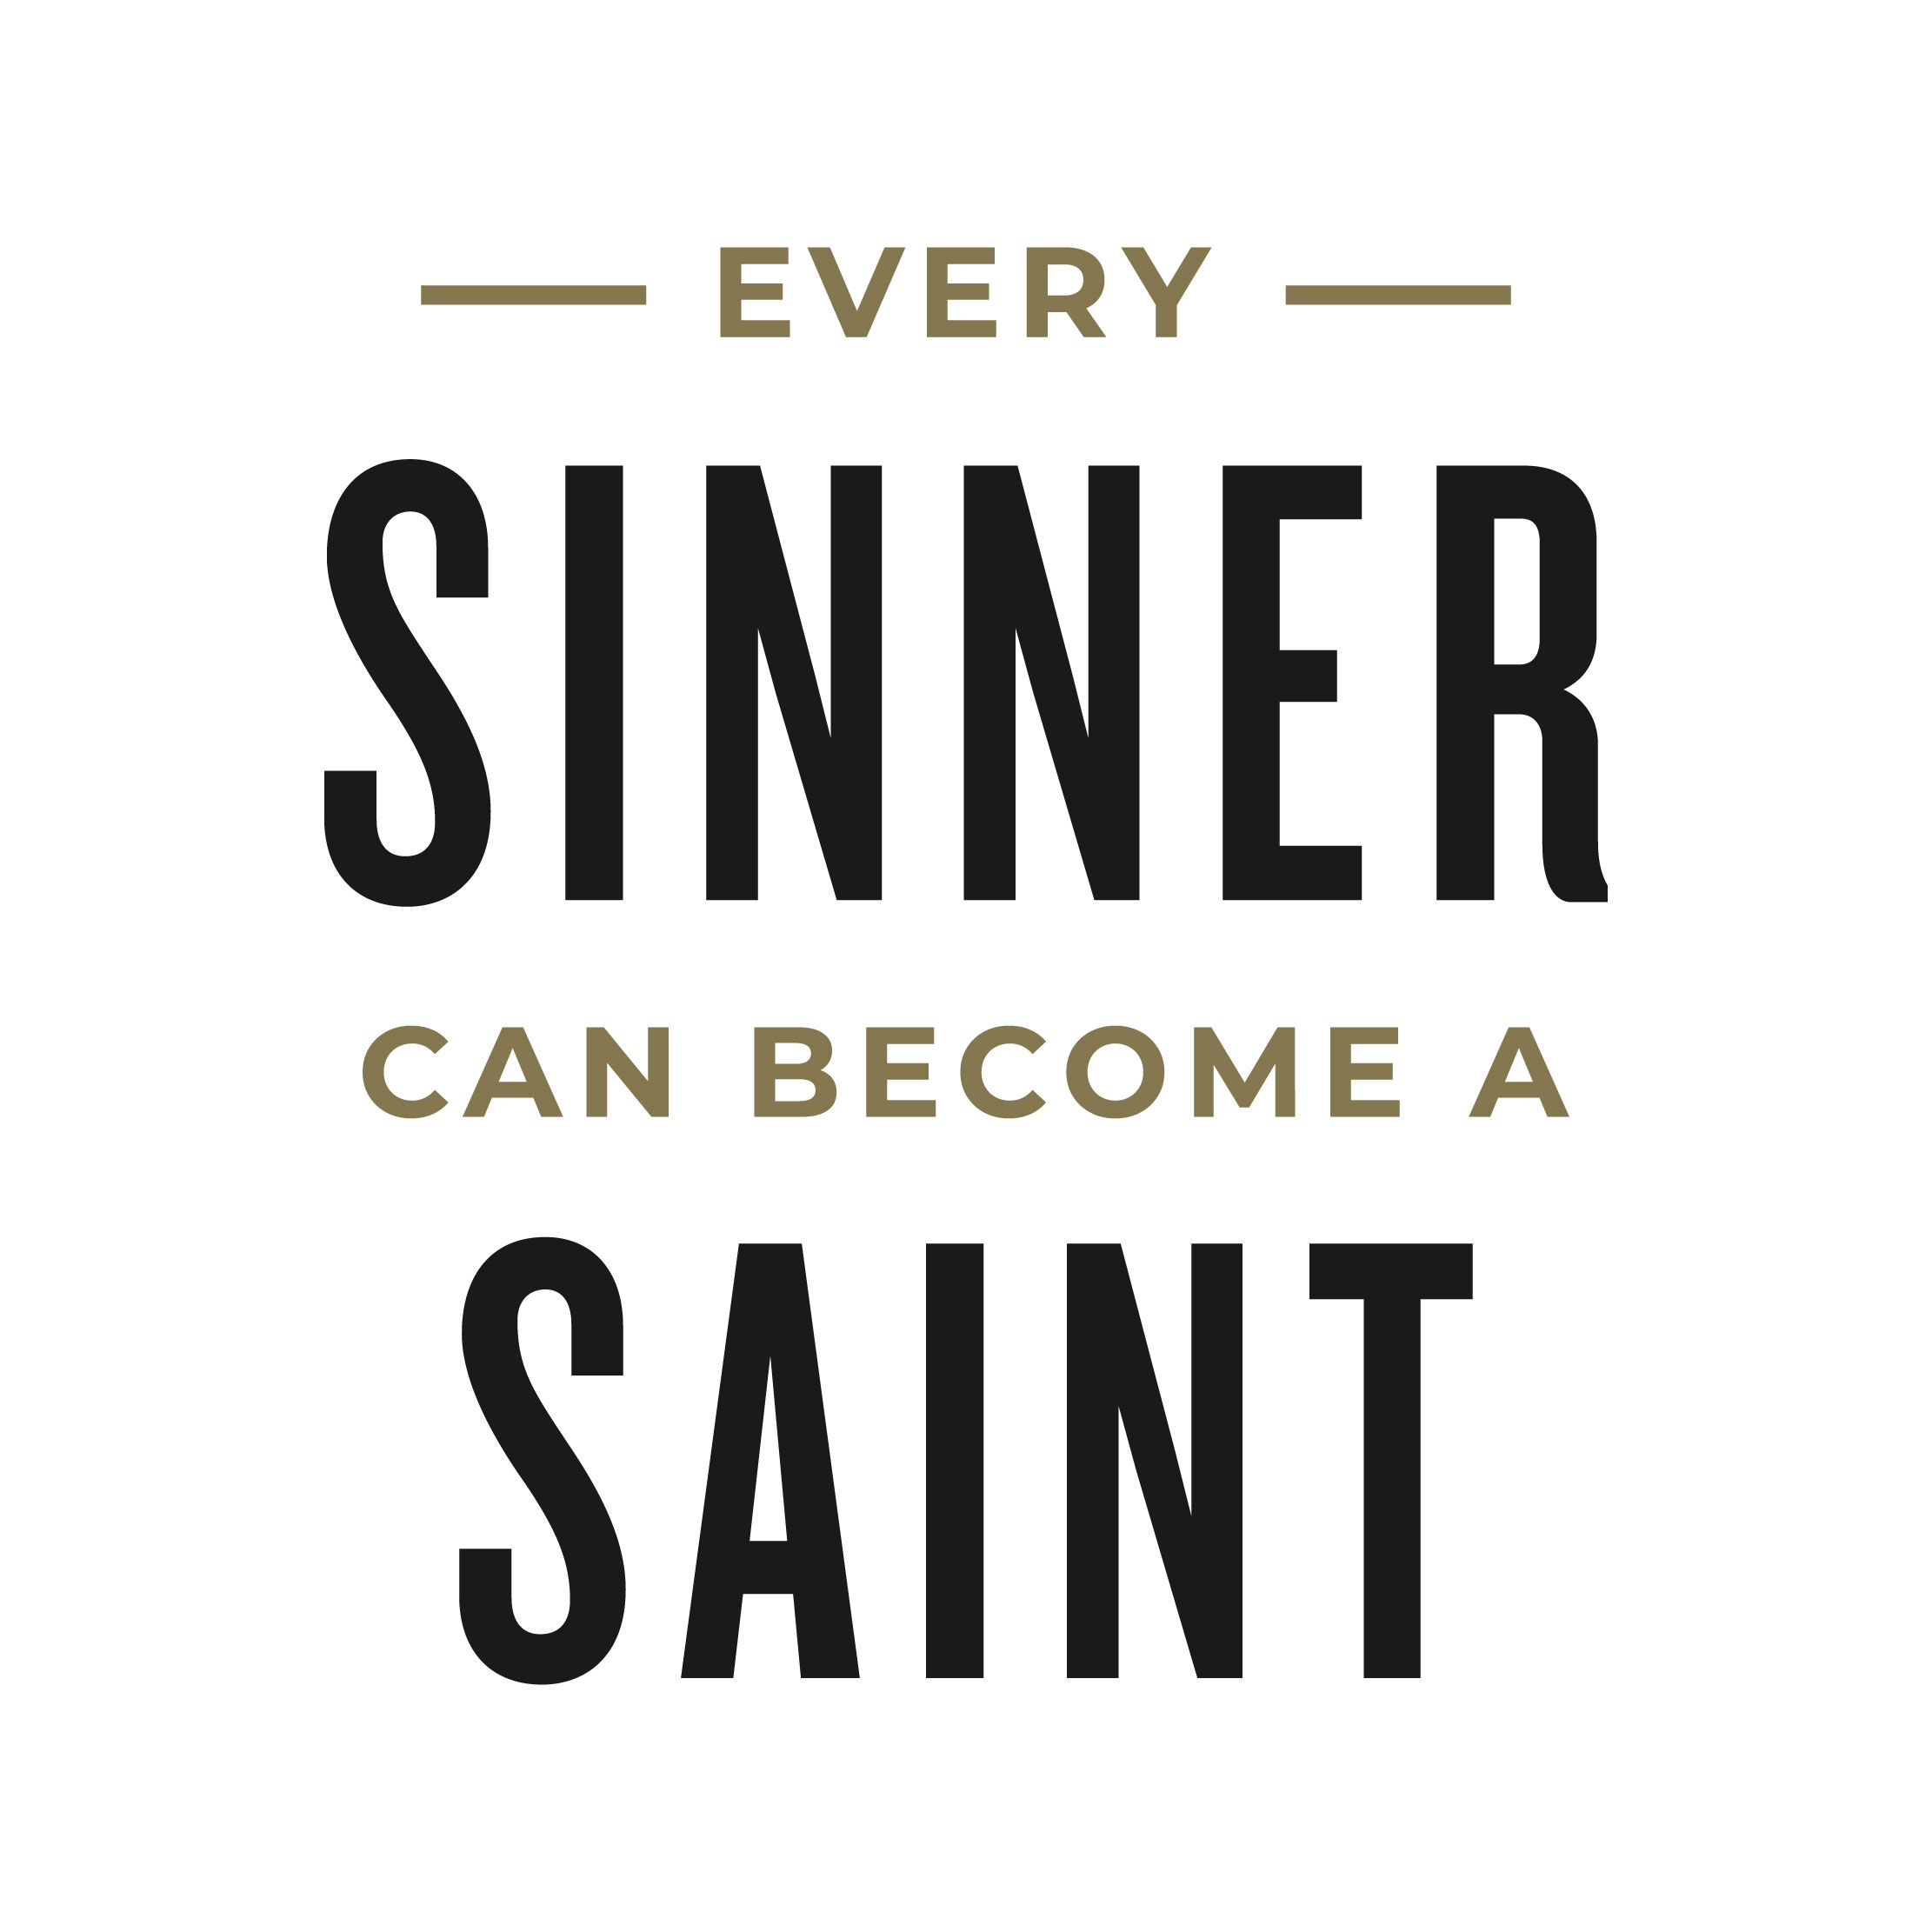 MS2 – Every sinner can become a saint